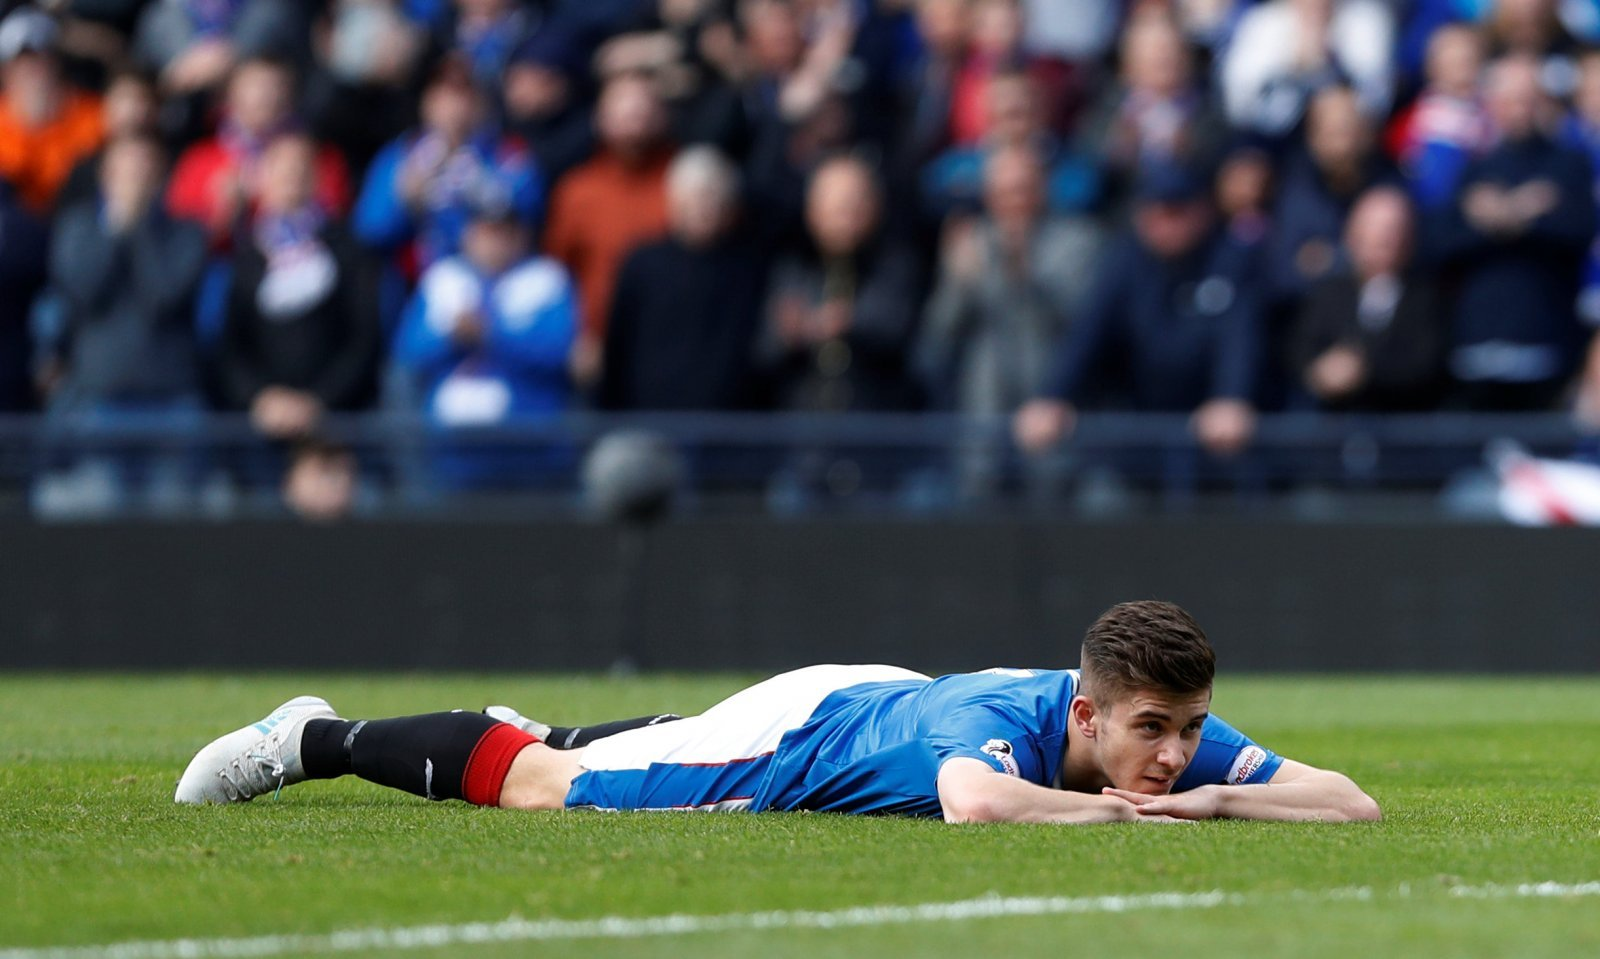 Letting Declan John leave earlier this summer could prove to be a big mistake by Gerrard